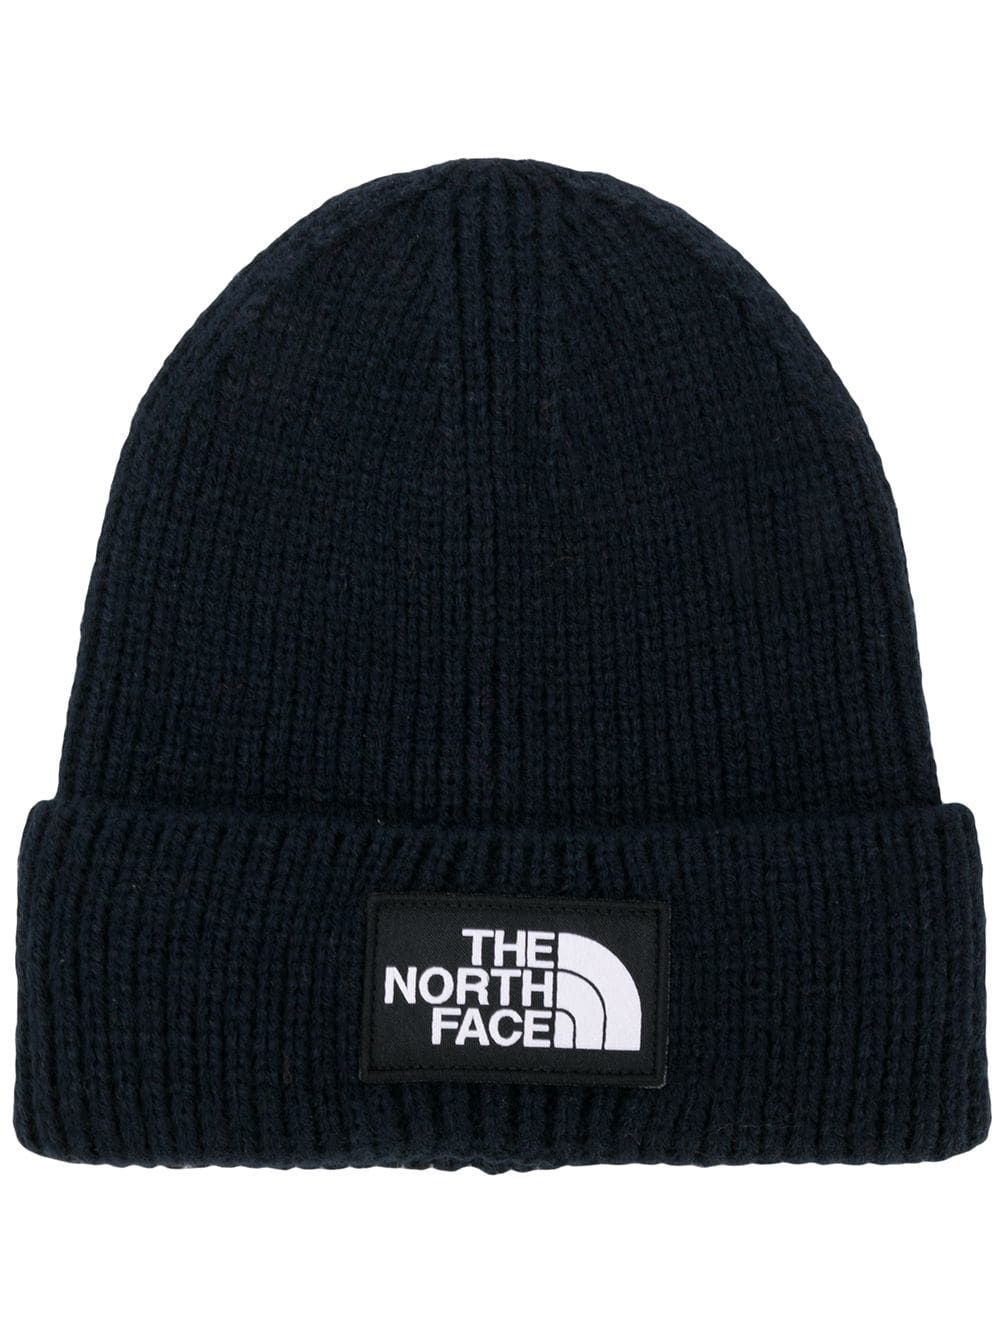 5a551a0e218 THE NORTH FACE THE NORTH FACE LOGO PATCH BEANIE HAT - BLUE.  thenorthface